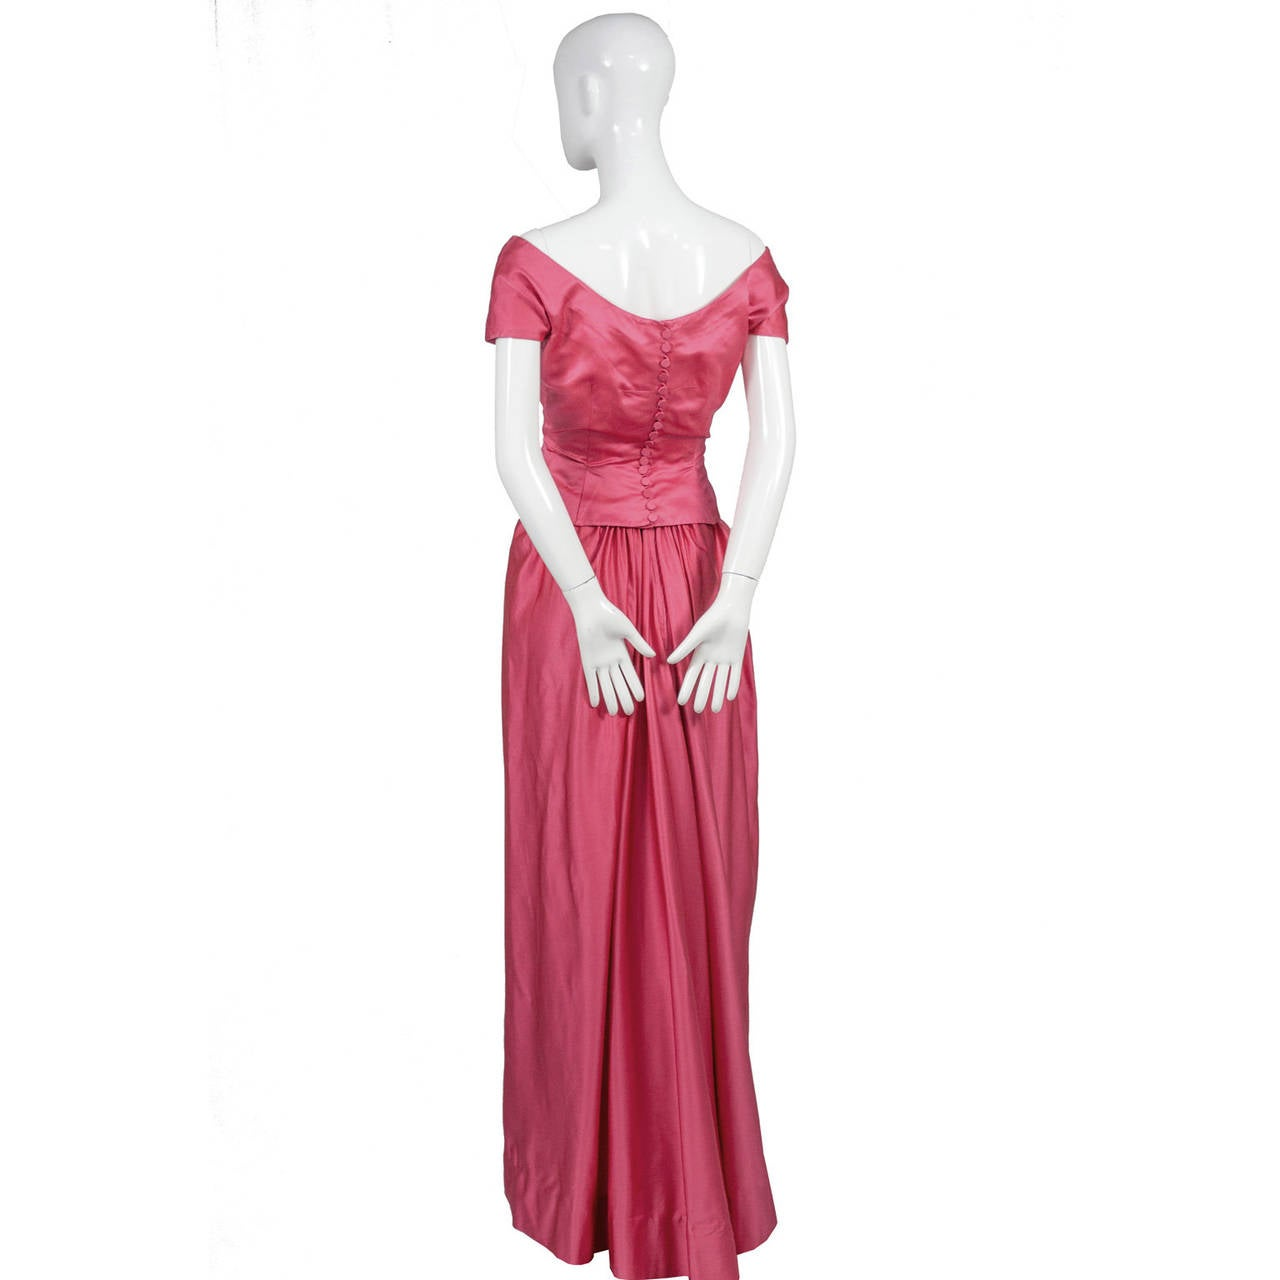 1950s Rare Clare Potter Vintage Pink Long Evening Gown Documented 2